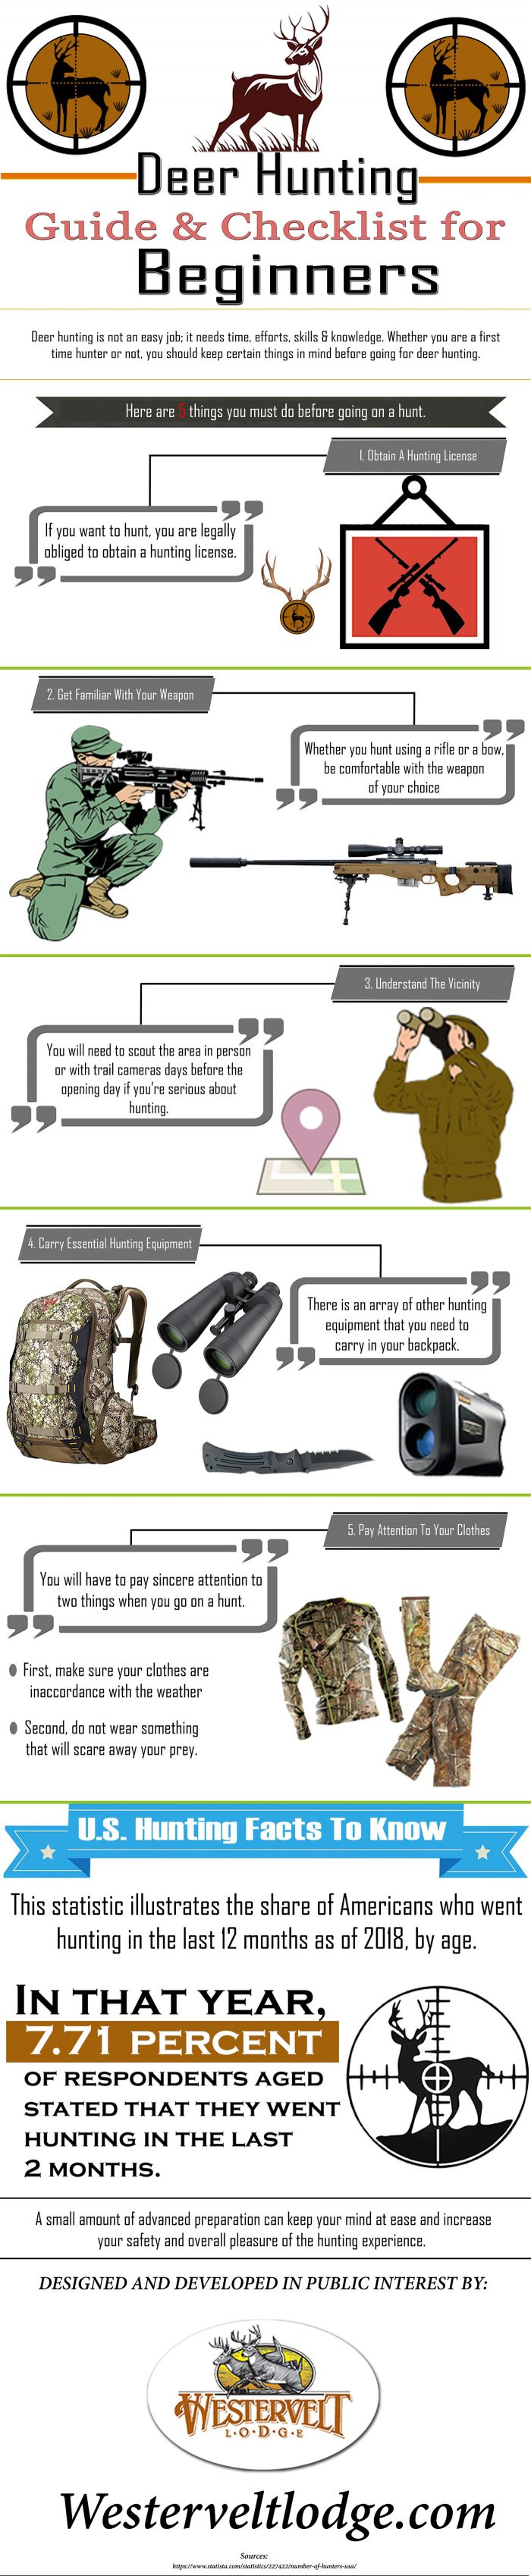 Deer Hunting Guide & Checklist for Beginners